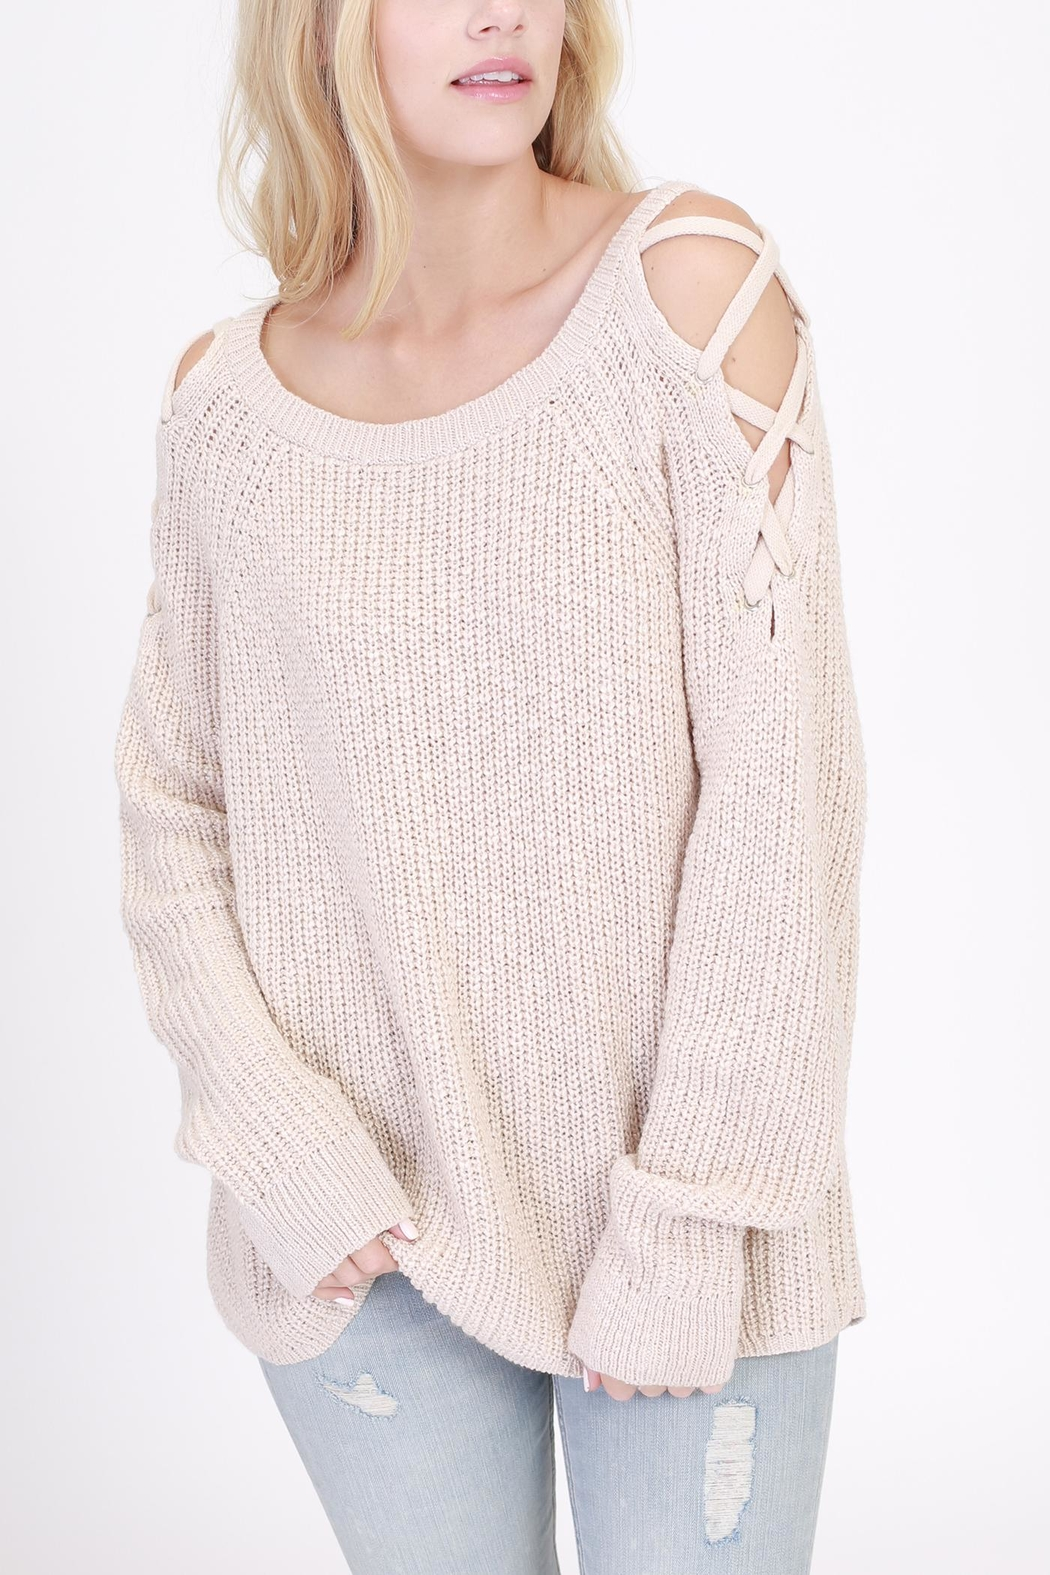 HYFVE Tie Shoulder Sweater - Front Cropped Image